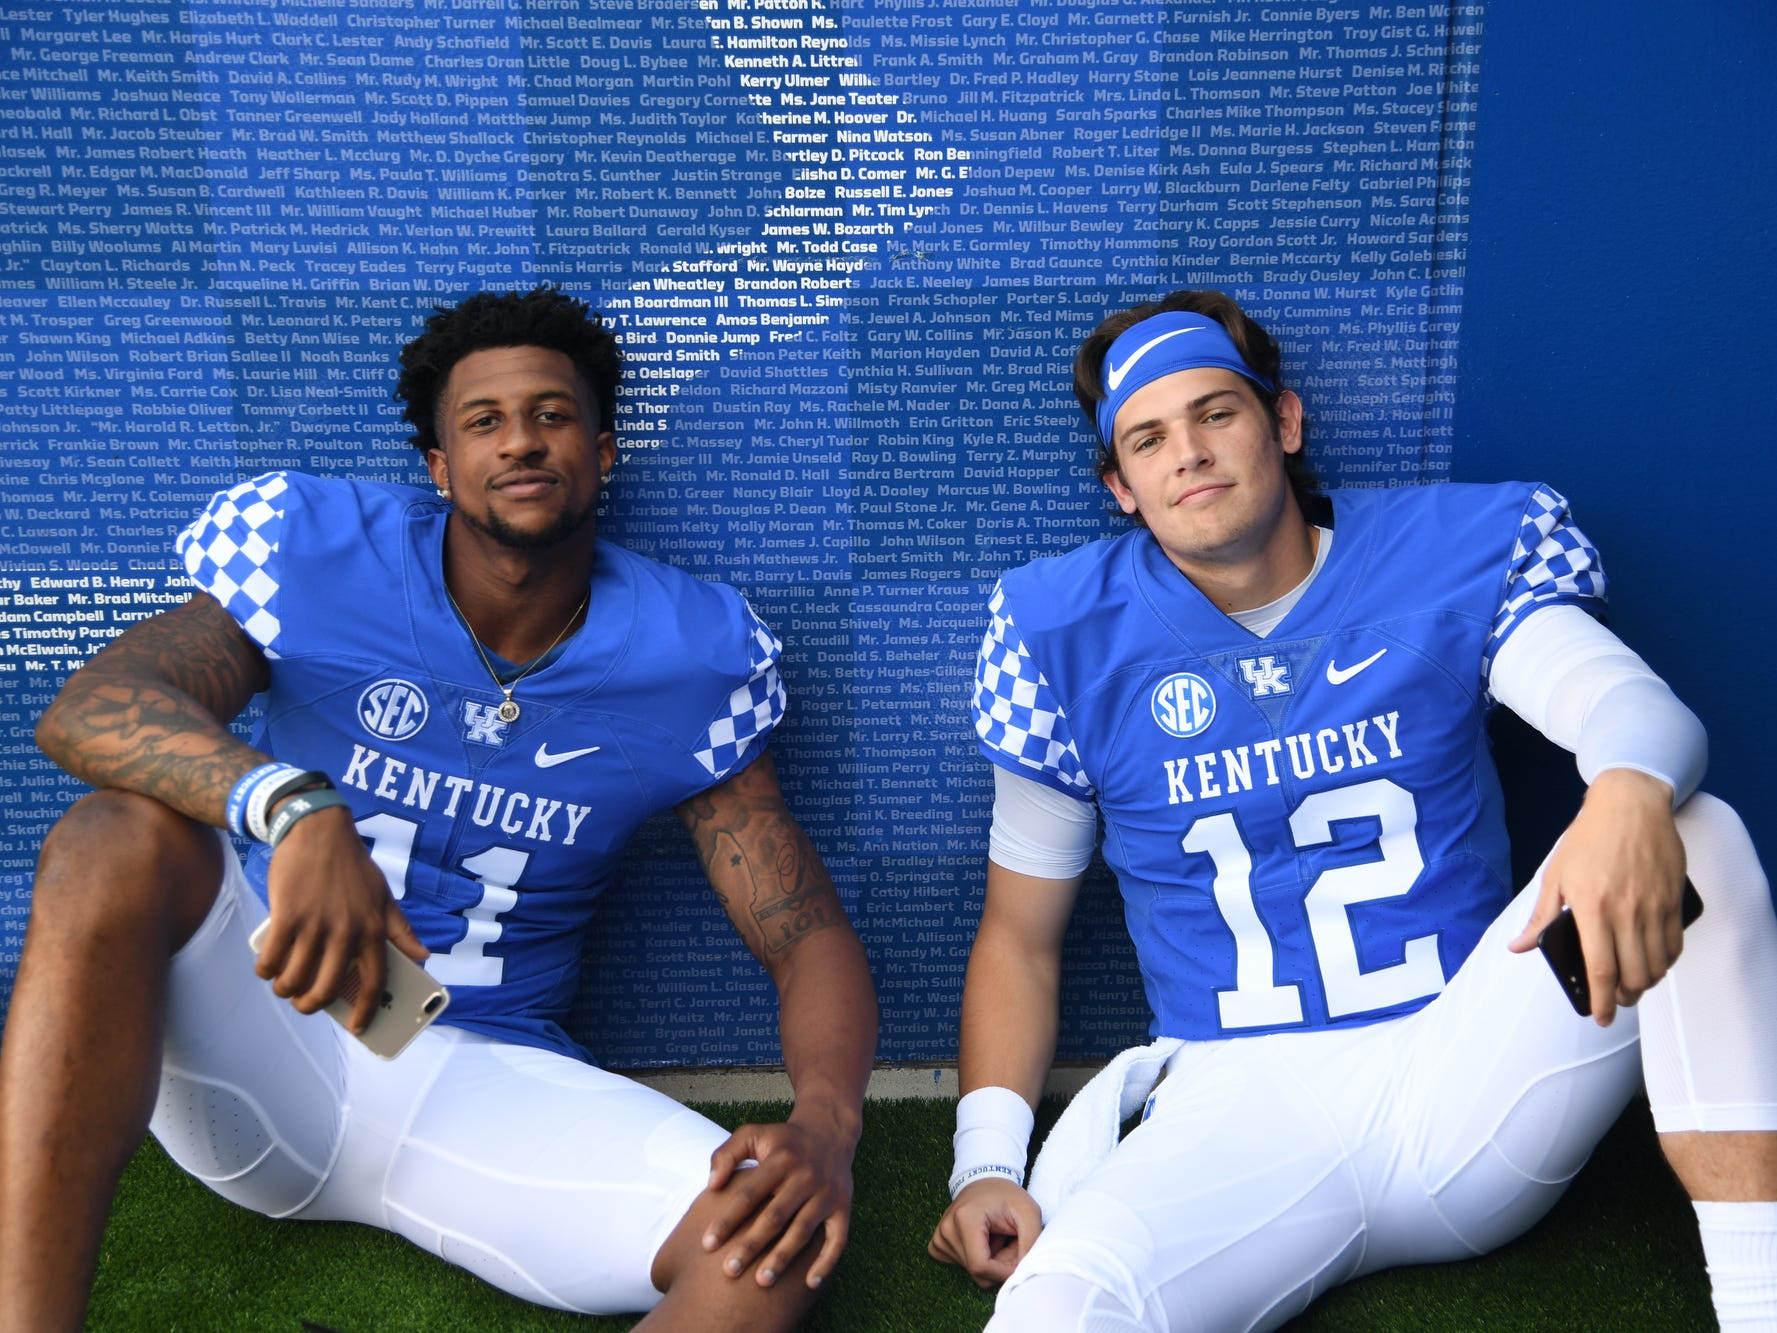 WR Tavin Richardson and QB Gunnar Hoak during the UK football media day at Kroger Filed in Lexington, Kentucky on Friday, August 3, 2018.